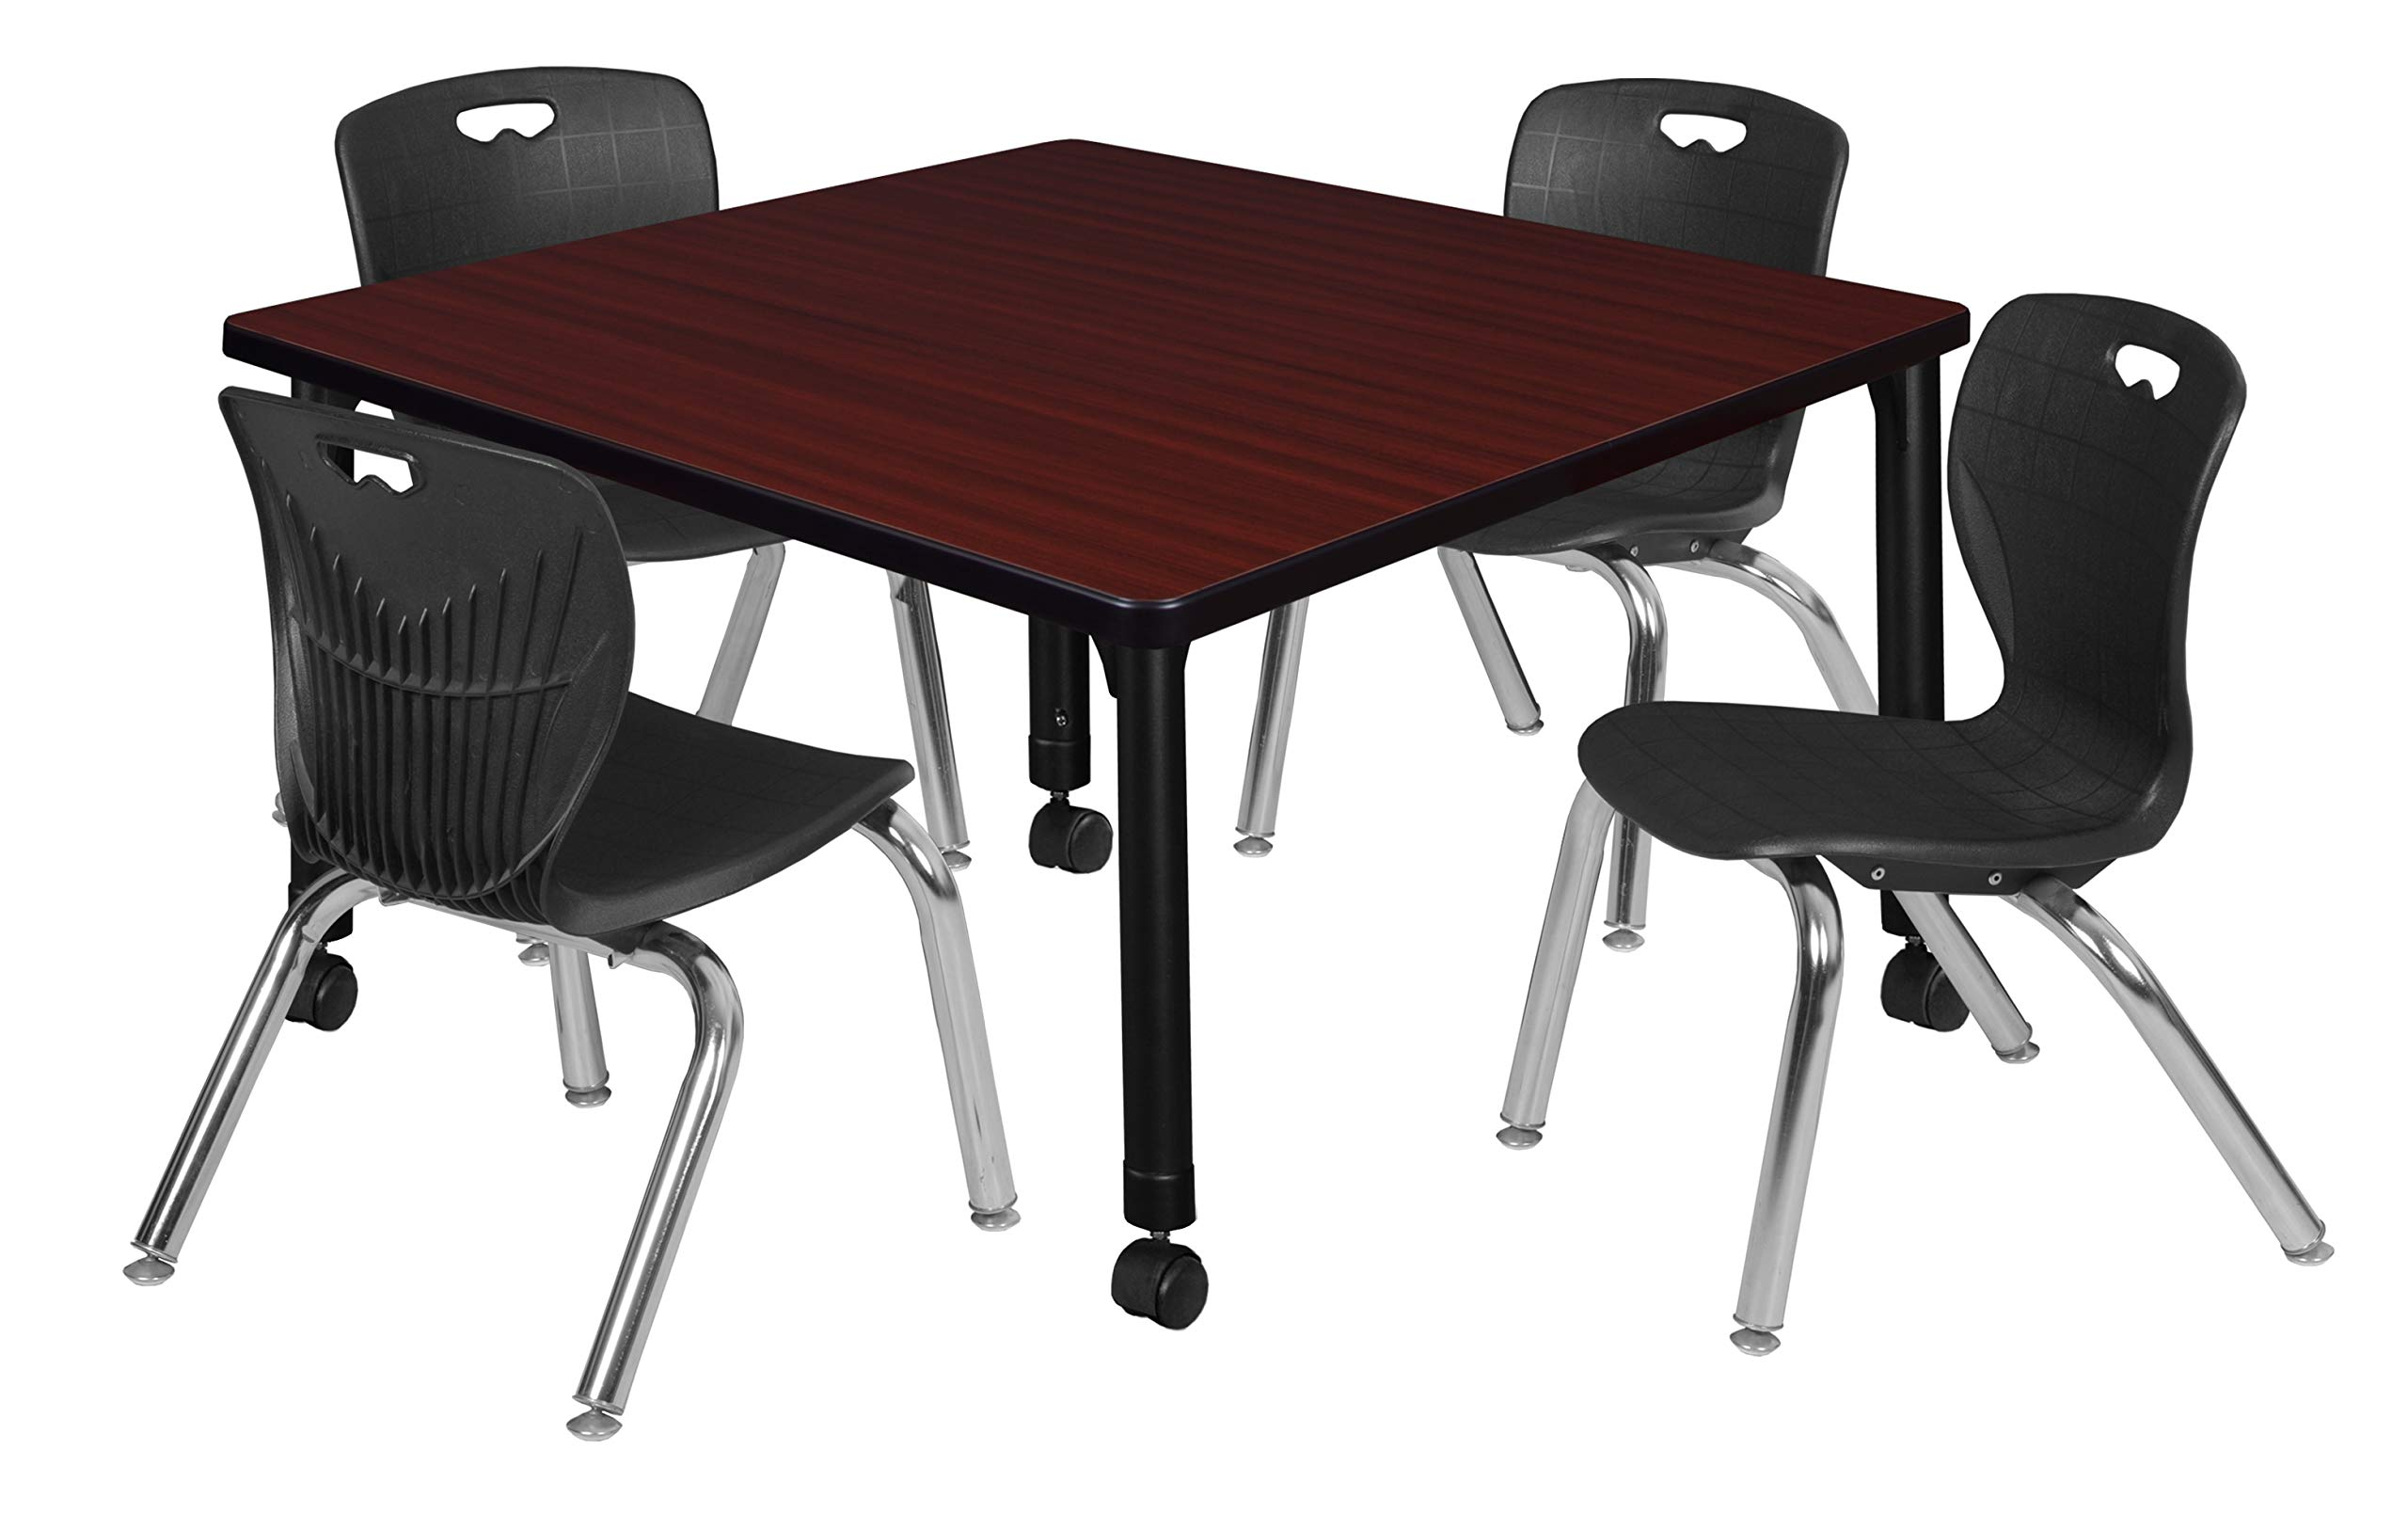 Regency TB4242MHAPCBK45BK Kee Height Adjustable Mobile Classroom Table Set with Four 12'' Andy Chairs 42'' Mahogany/Black